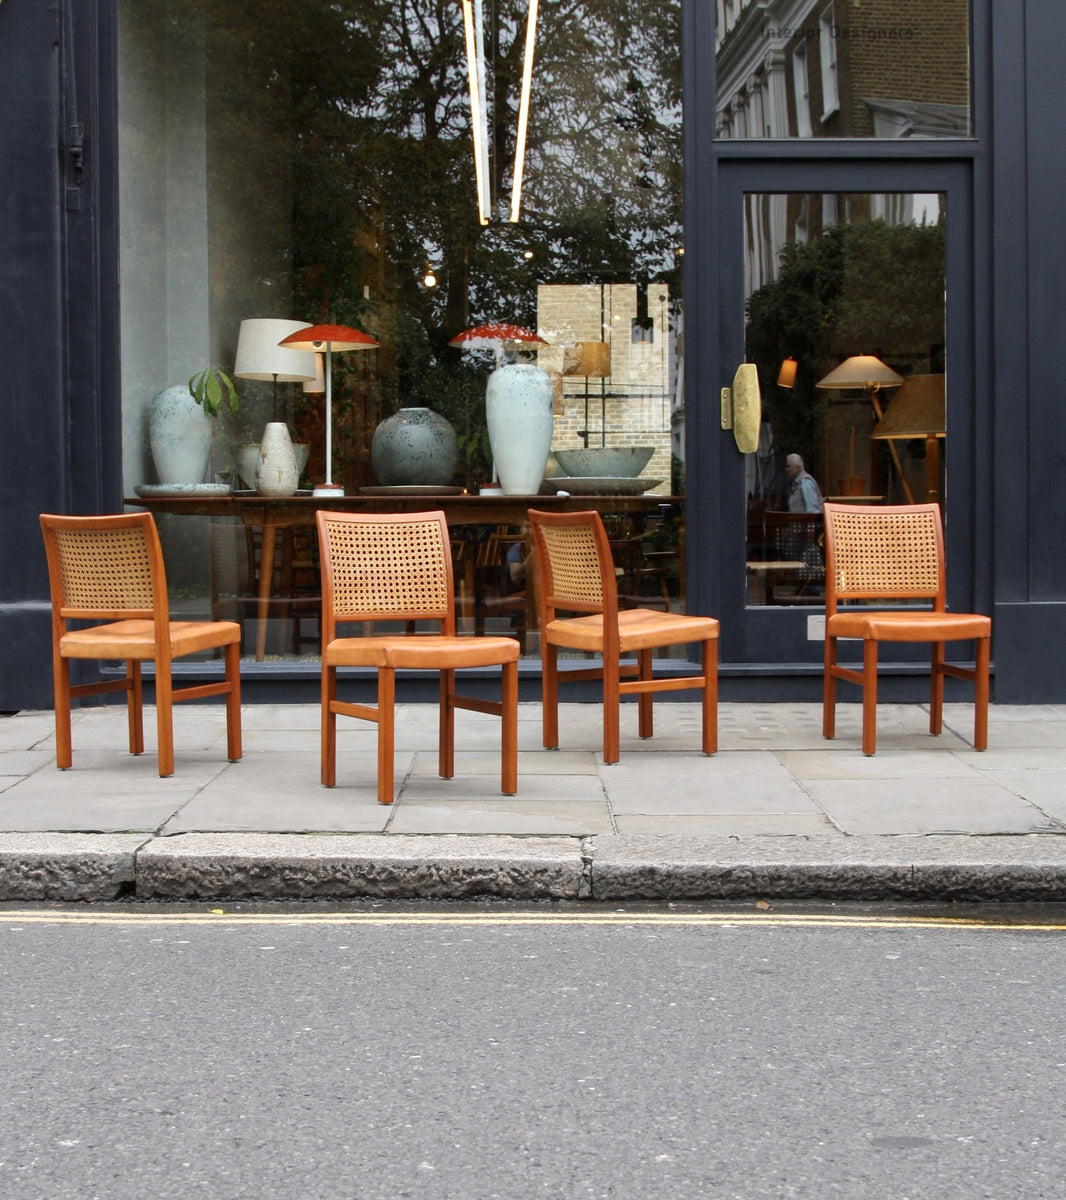 Four Teak, Leather & Cane Chairs Carl-Gustav Hiort af Ornäs  - Image 8